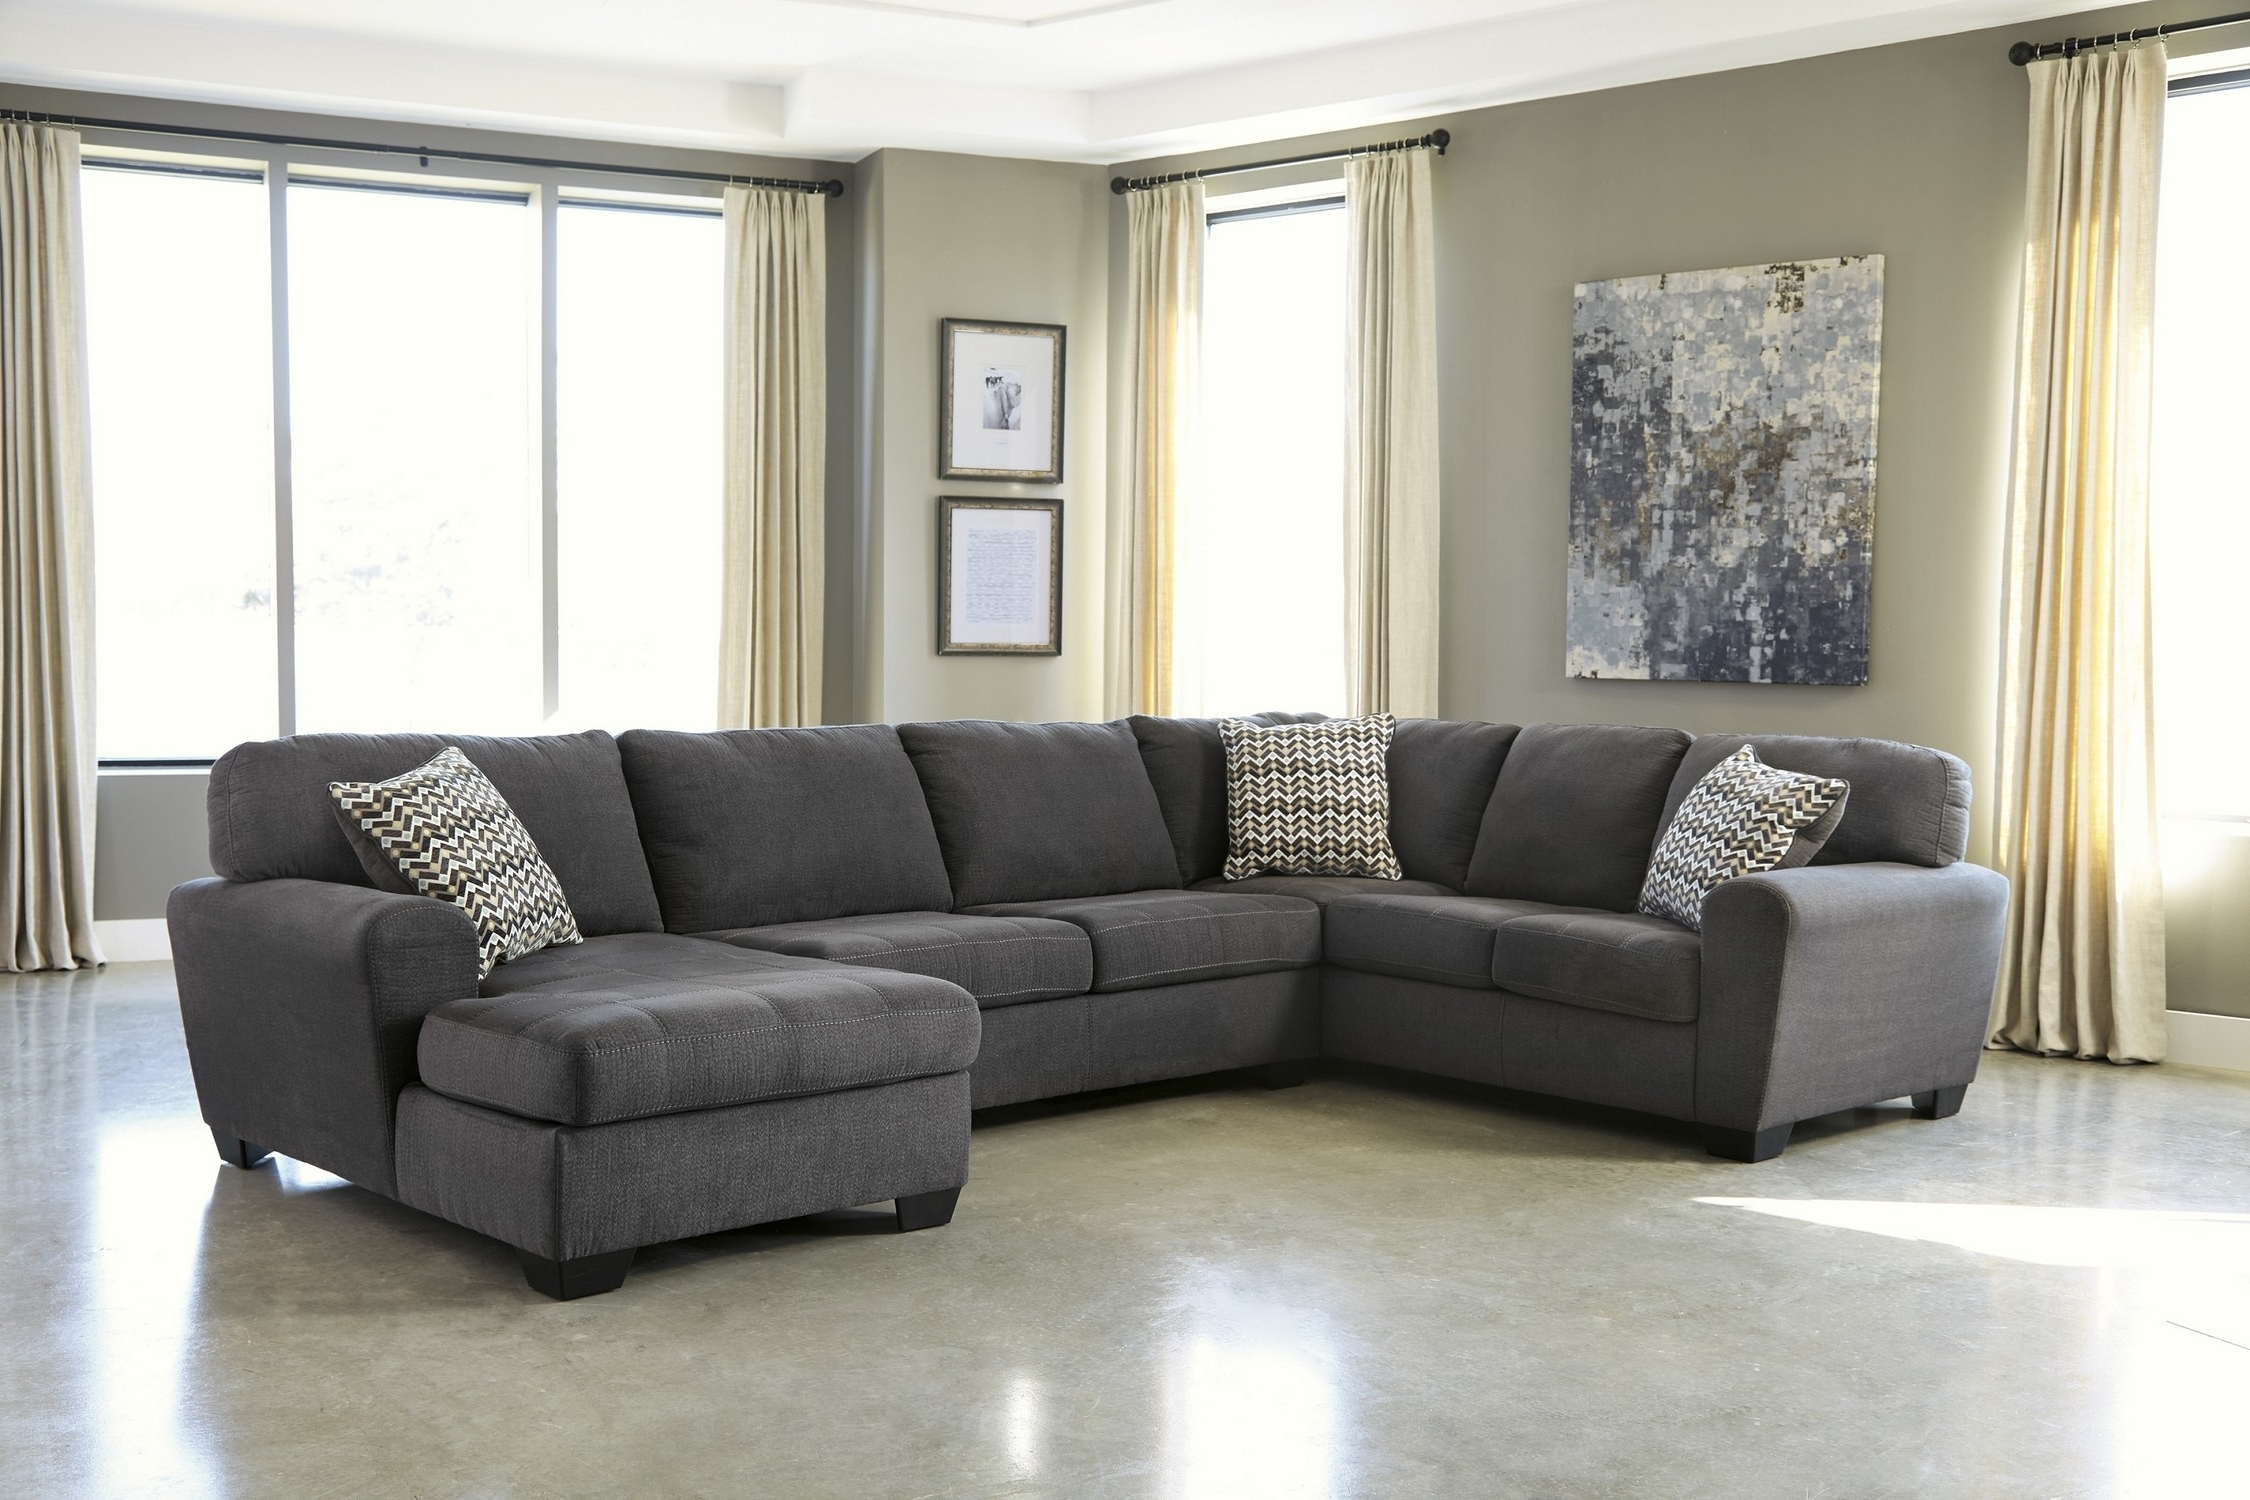 Most Recent Alenya 3 Piece Sectional Quartz Fabric Reclining Sectional Grey Inside Grey Sectional Sofas With Chaise (View 11 of 15)